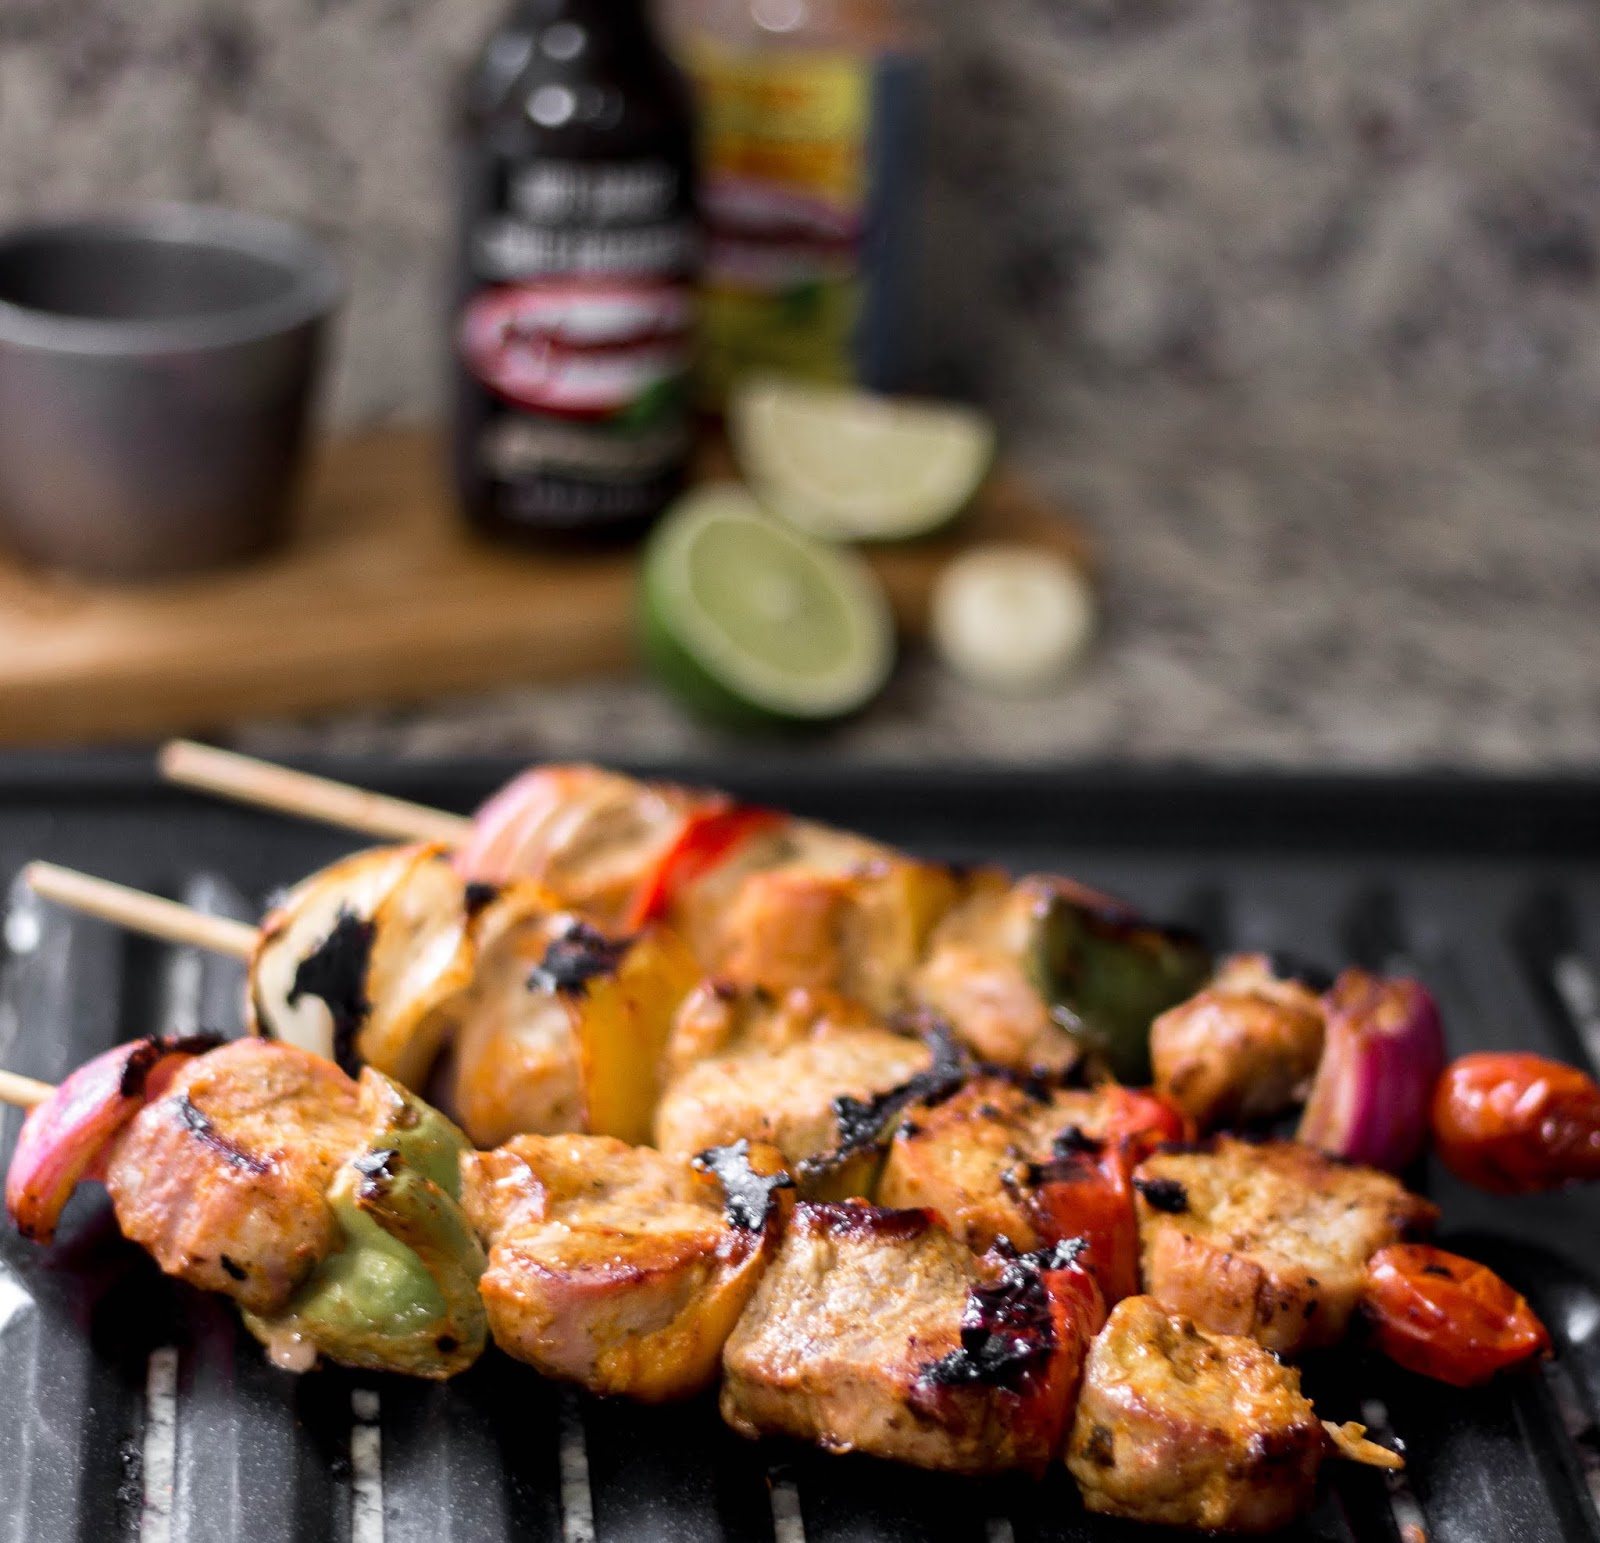 el-yucateco-grilling-skewers-recipe